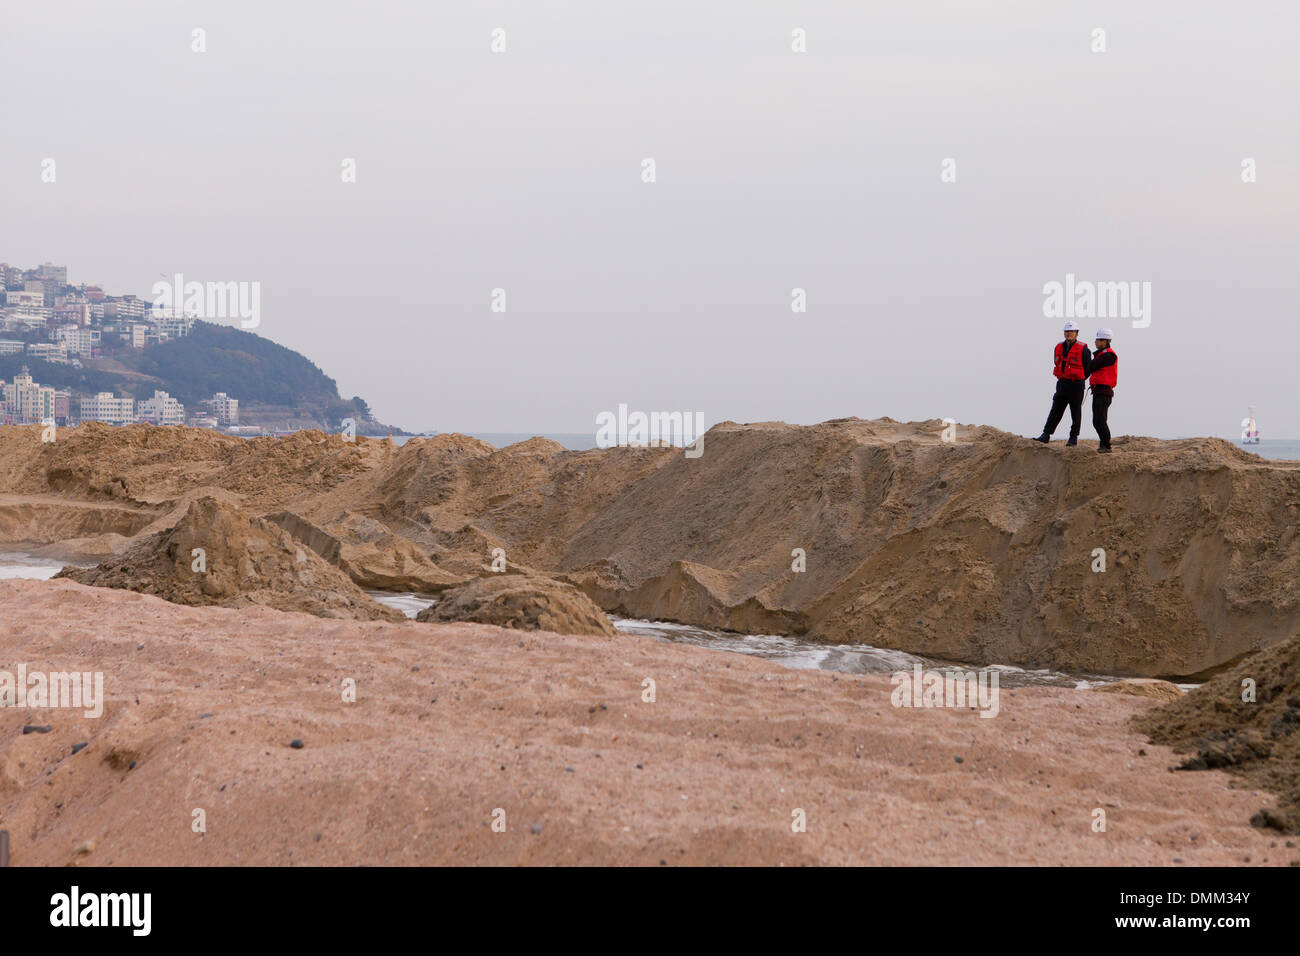 Supervisors overlooking a beach reclamation project site - Haeundae, Busan, South Korea - Stock Image